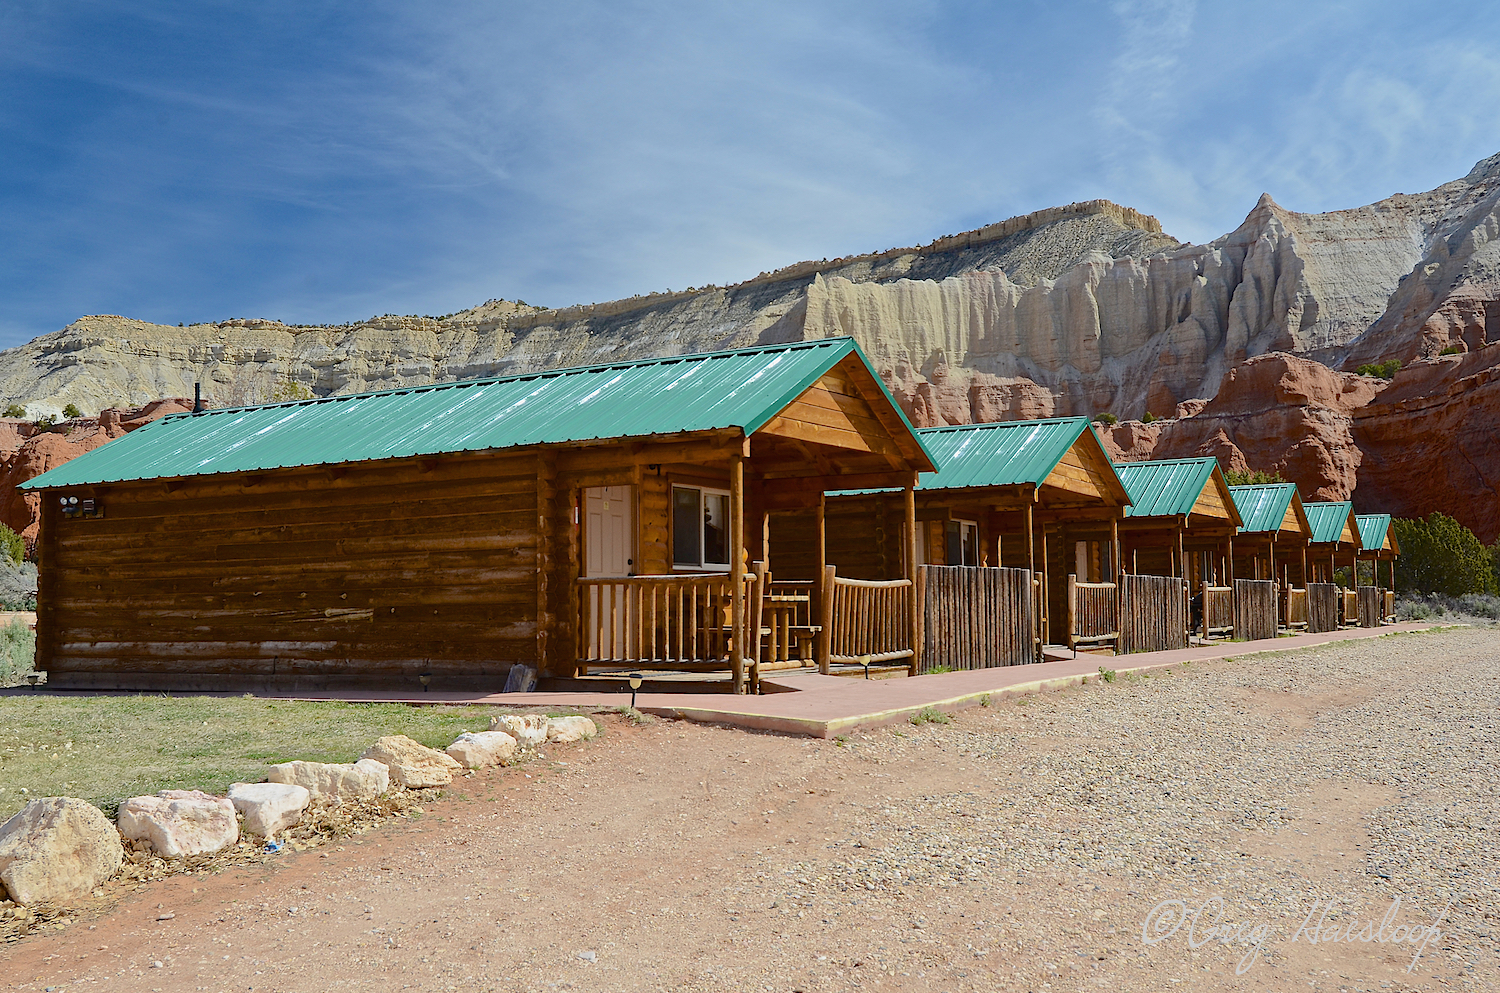 These might be the cabins where Greg and Ann stayed.  He called them the Red Stone cabins and said they were nice and had the added benefit of being in the park.